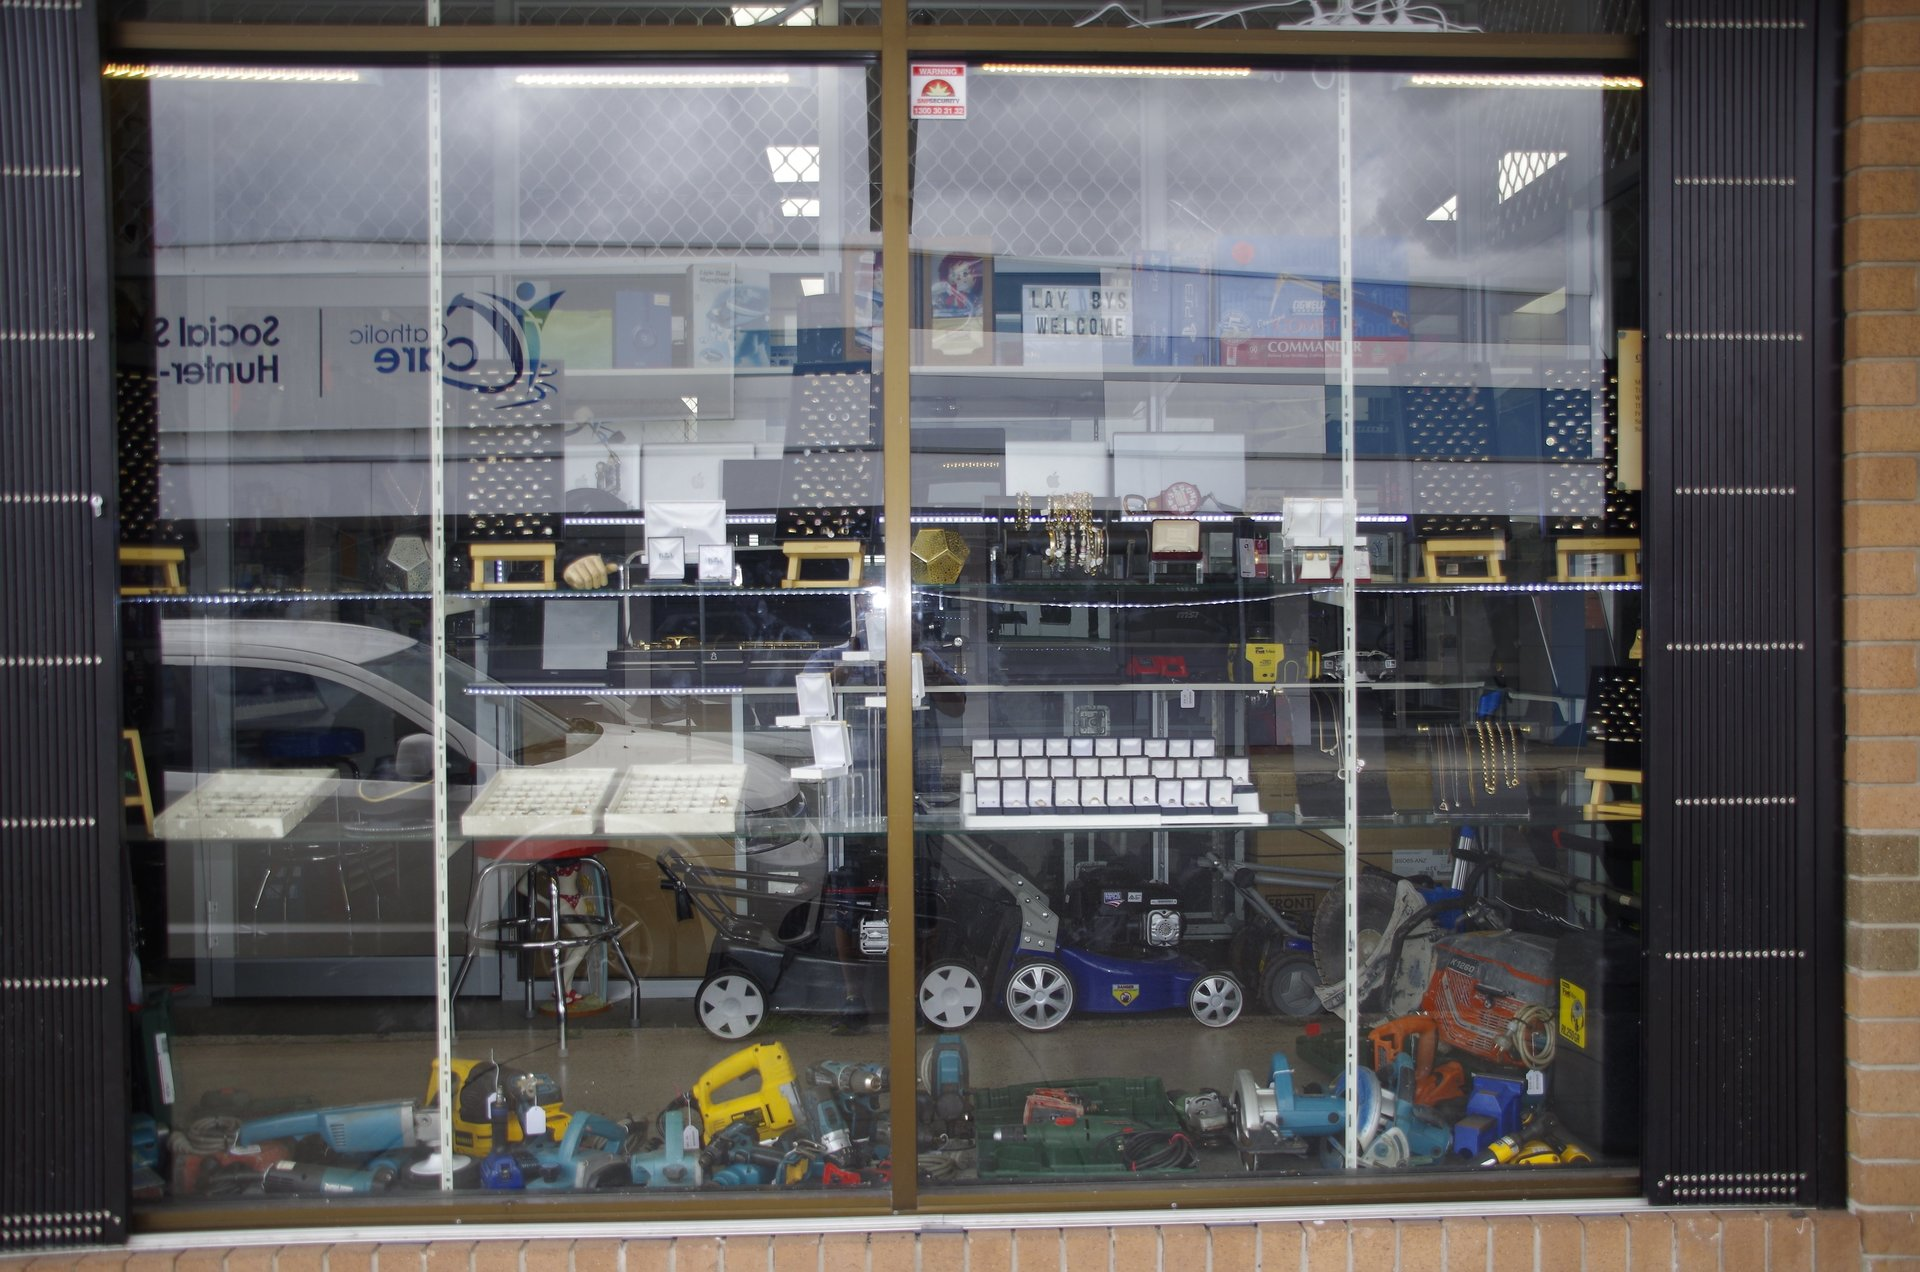 Sell Scrap Gold In Newcastle To Nsw Instant Cash How Find Electronics Large Range Of Jewellery